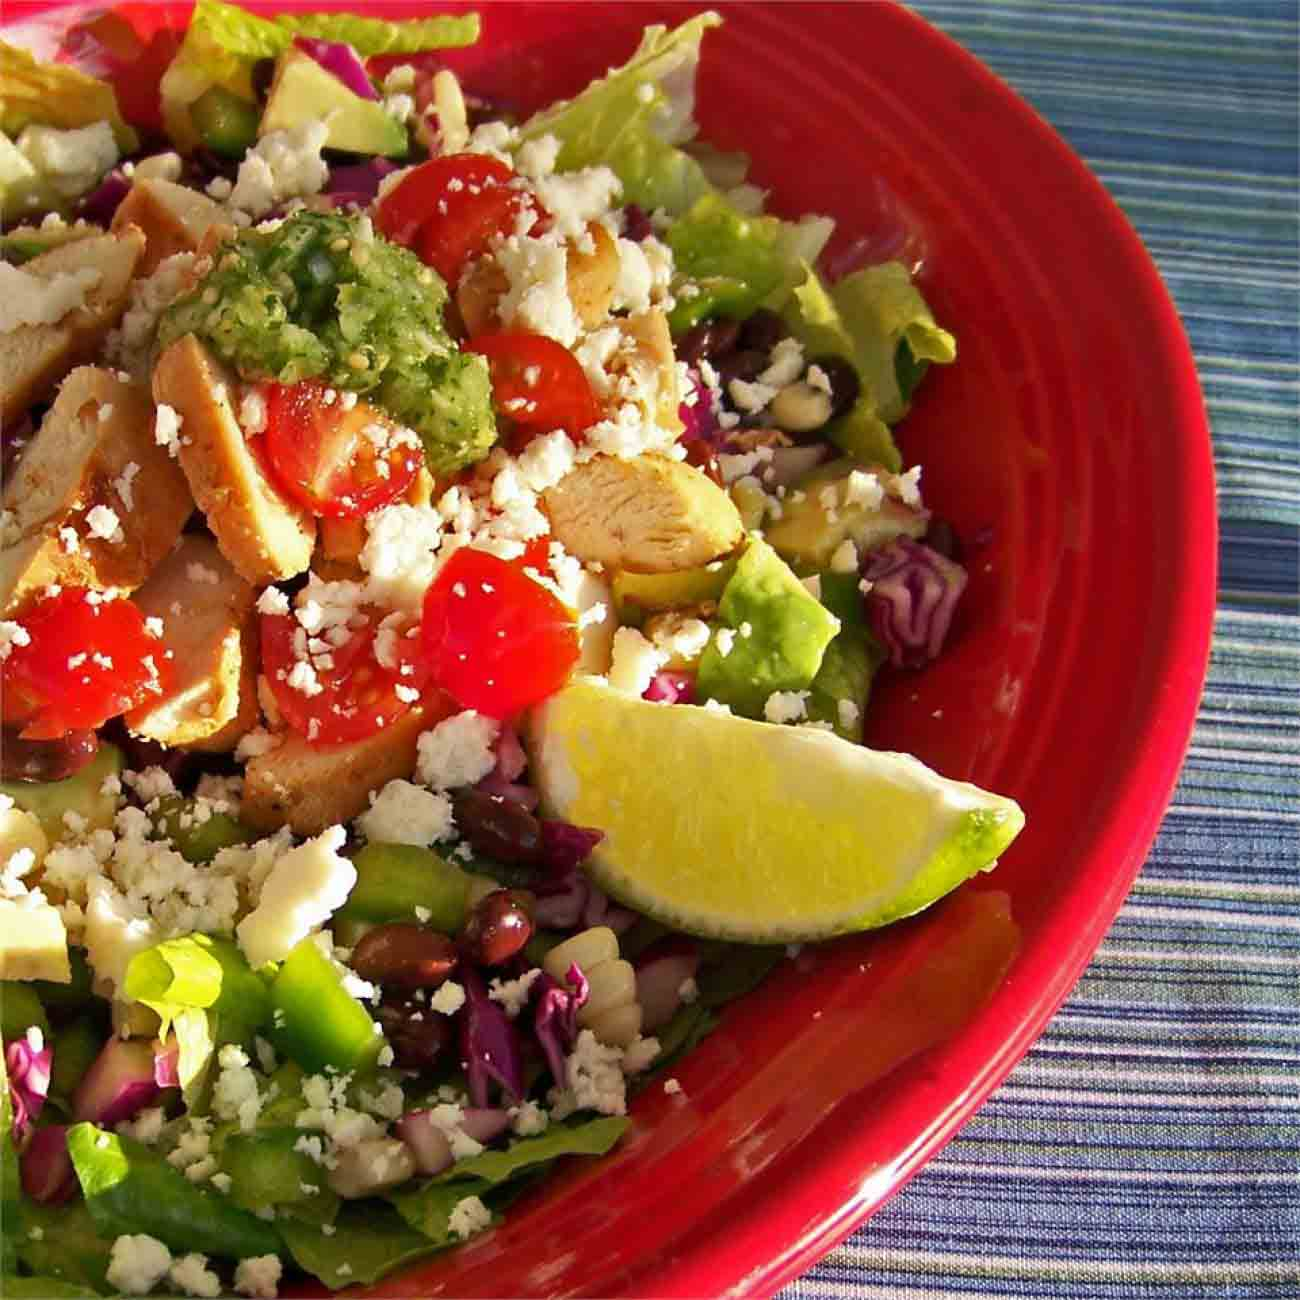 Spicy Southwest Chopped Salad with Salsa Verde Recipe